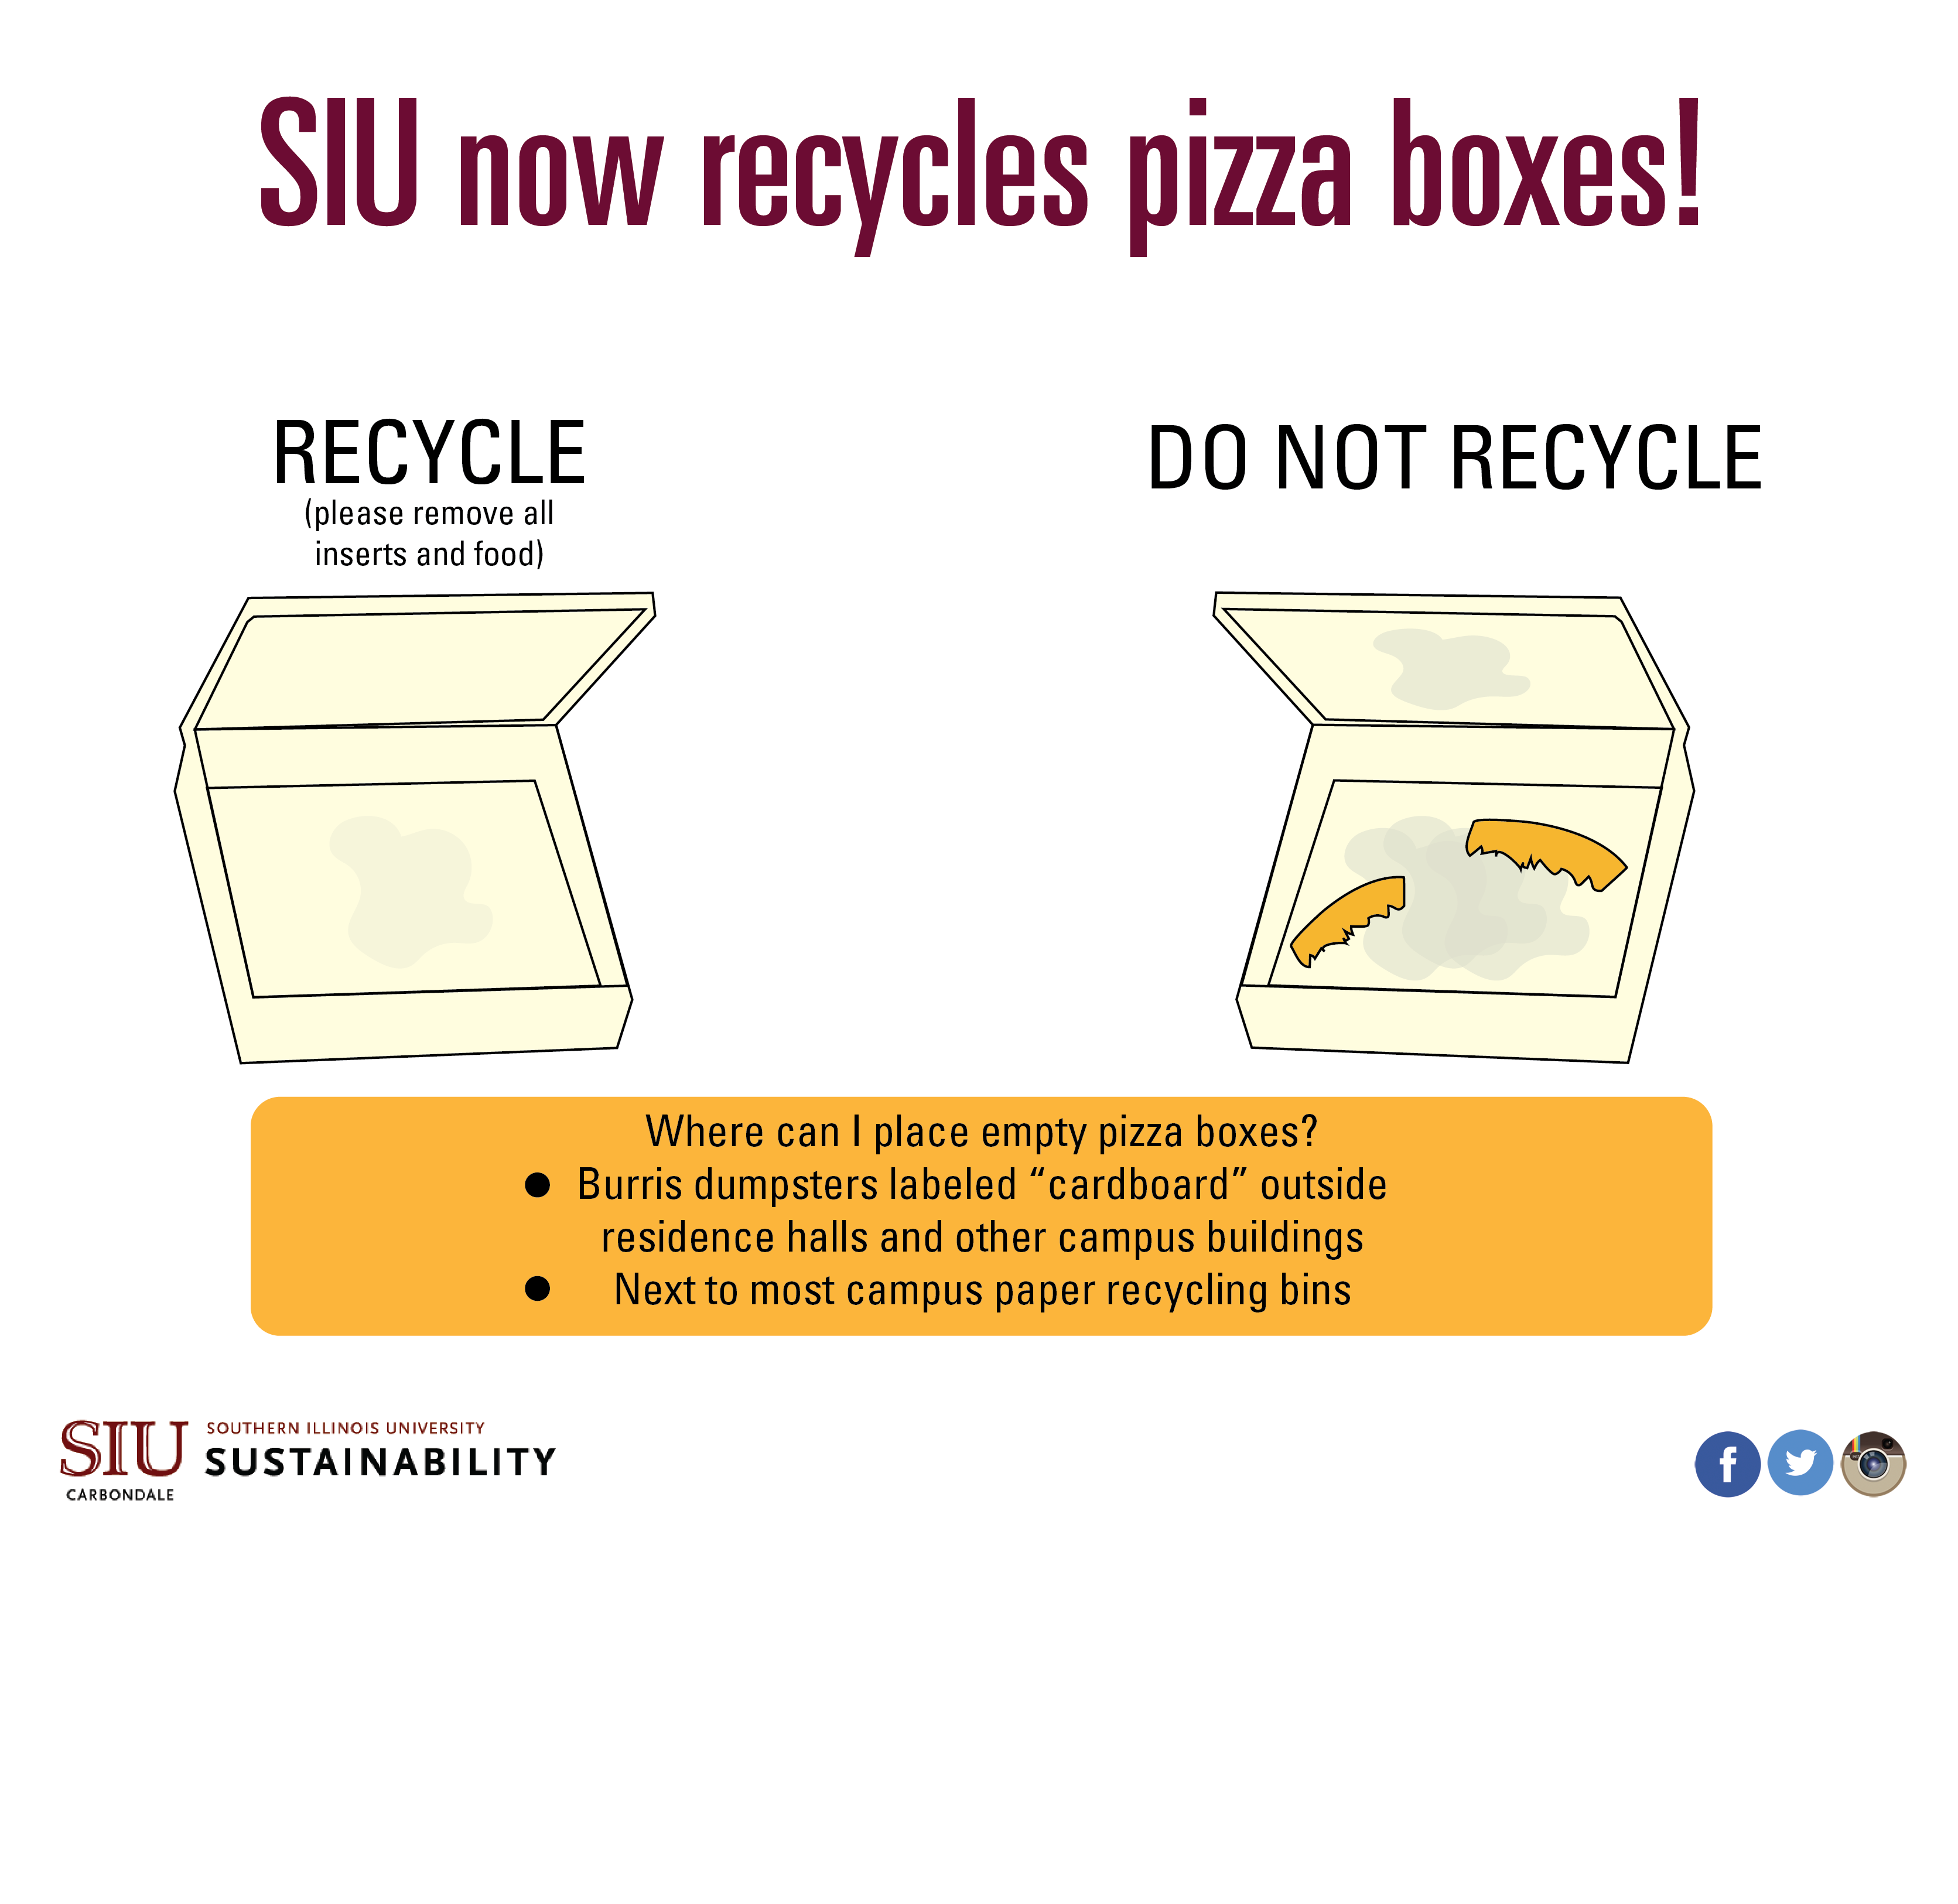 Pizza boxes can be recycled at SIU. All food and inserts should be removed.